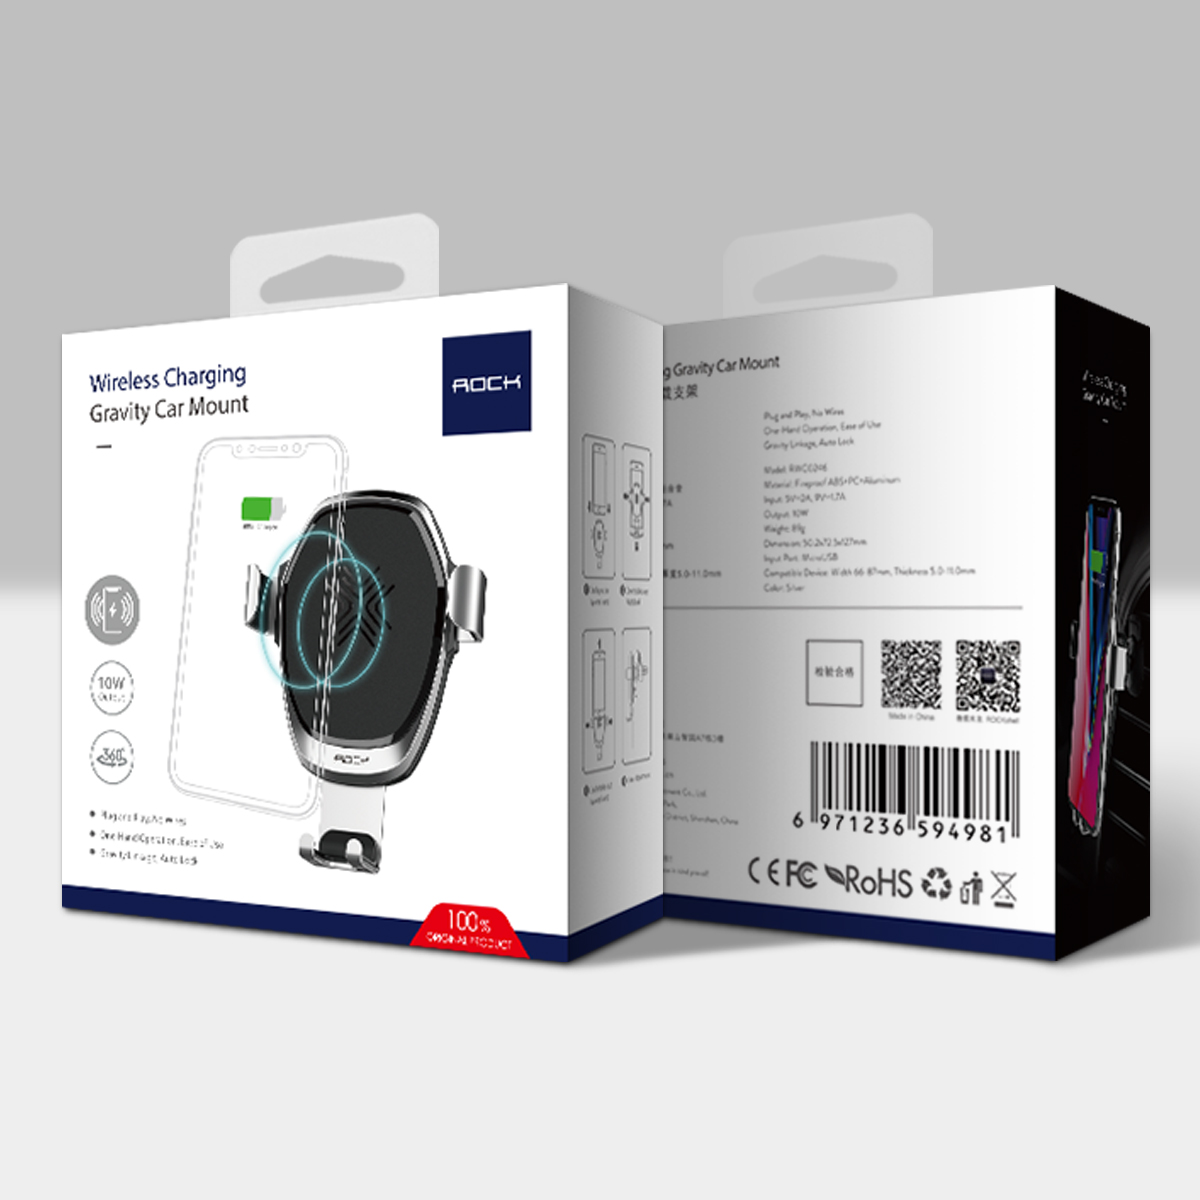 HTB12FMkB5OYBuNjSsD4q6zSkFXaB - 10W QI Wireless Car Charger Gravity Holder , ROCK for iPhone X 8 Plus Samsung Galaxy S8 S7 Note 8 Quick Charge Charging Stand